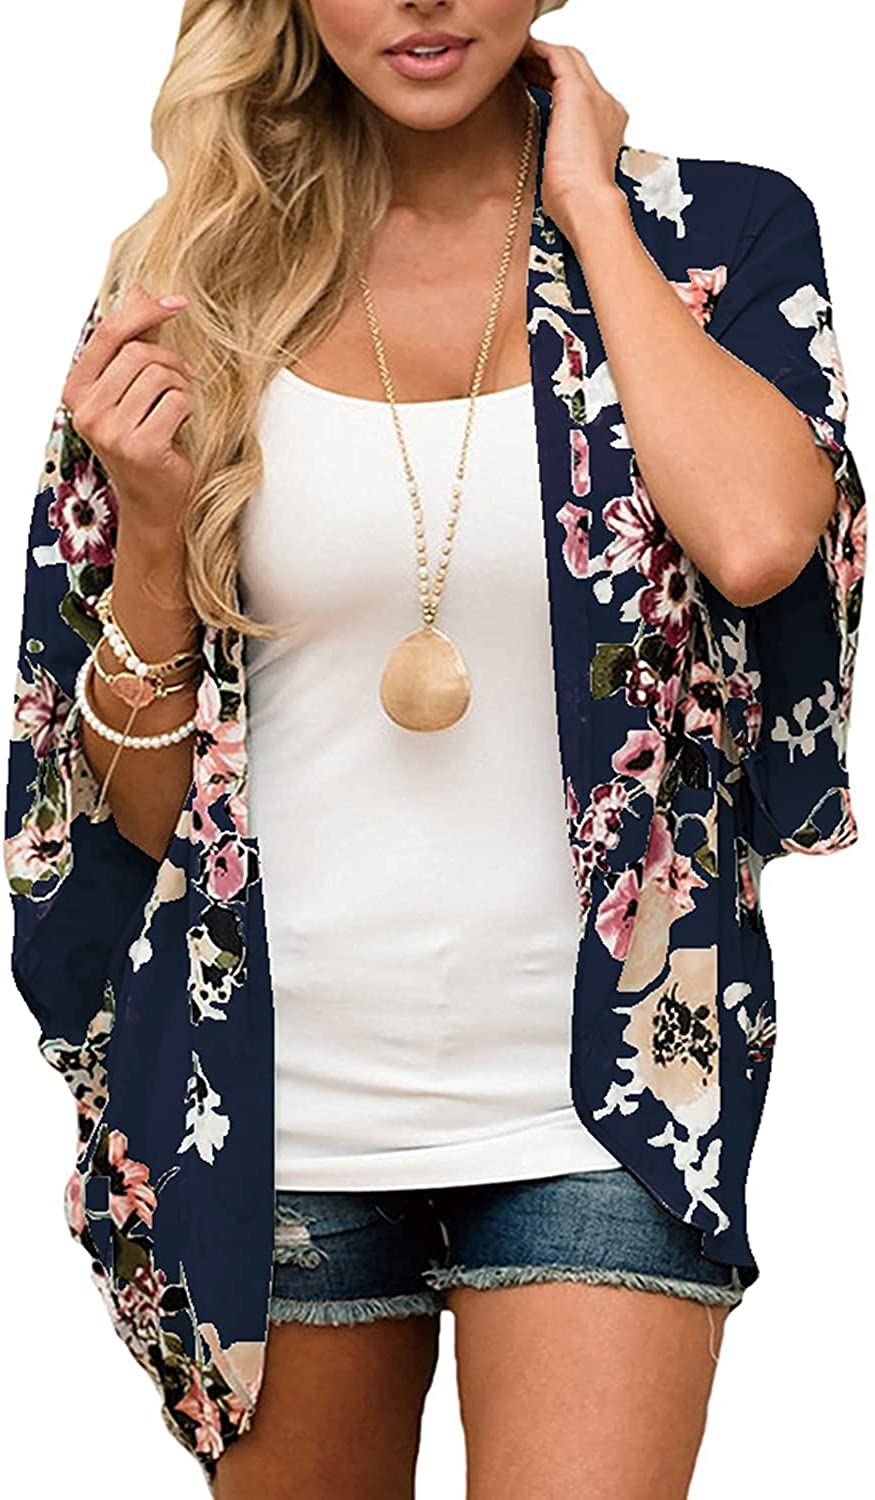 BB&KK Women's Floral Kimono Cardigans Chiffon Casual Loose Open Front Cover Ups Tops